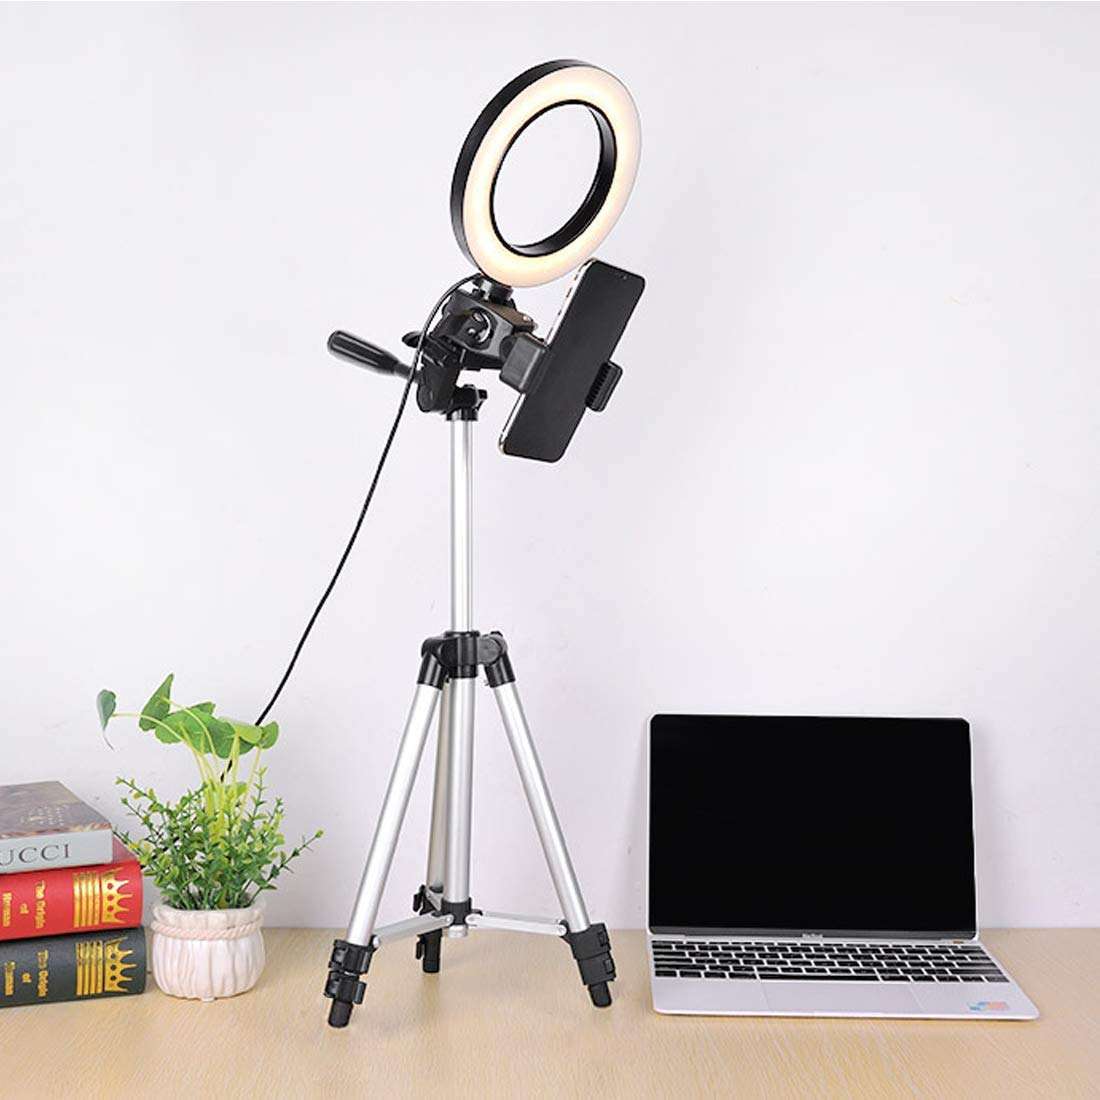 """WongPing 5.7"""" Ring Light with Tripod Stand for YouTube Video Selfie Live Stream and Makeup Dimmable LED Camera Light with Cellphone Holder Desktop 64 Led Lamp with 3 Modes & 10 Brightness Level"""